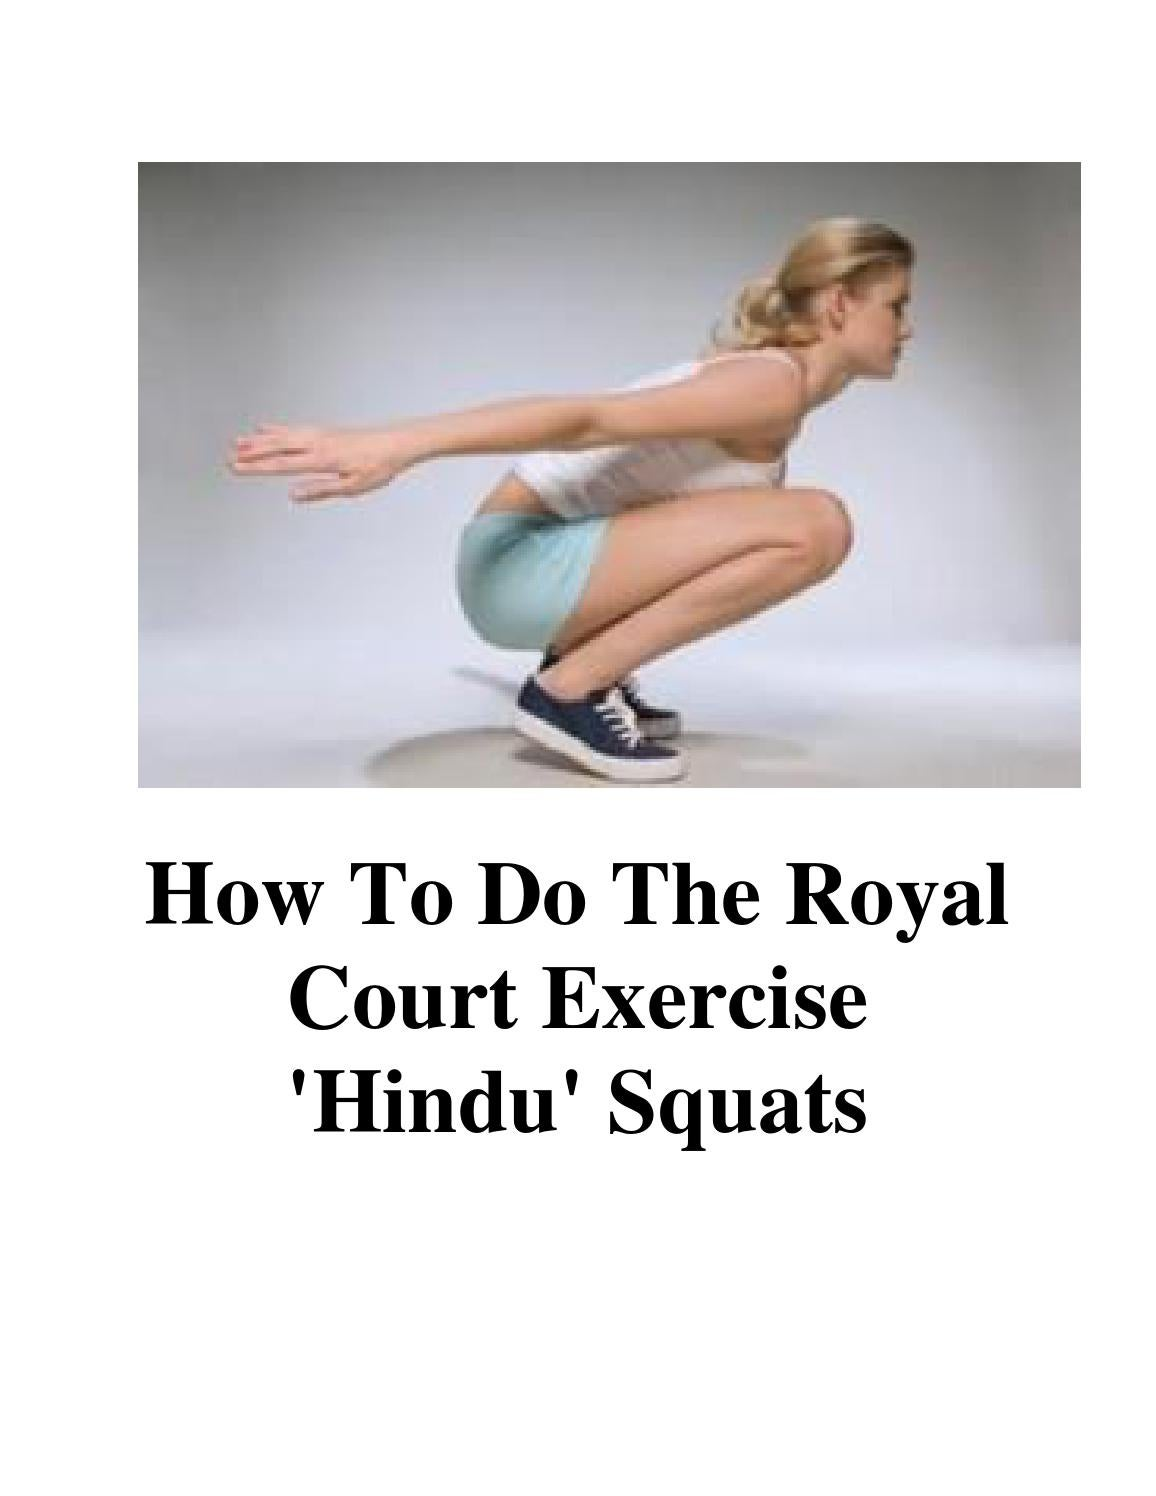 How to do the royal court exercise hindu squats by Foras Aje